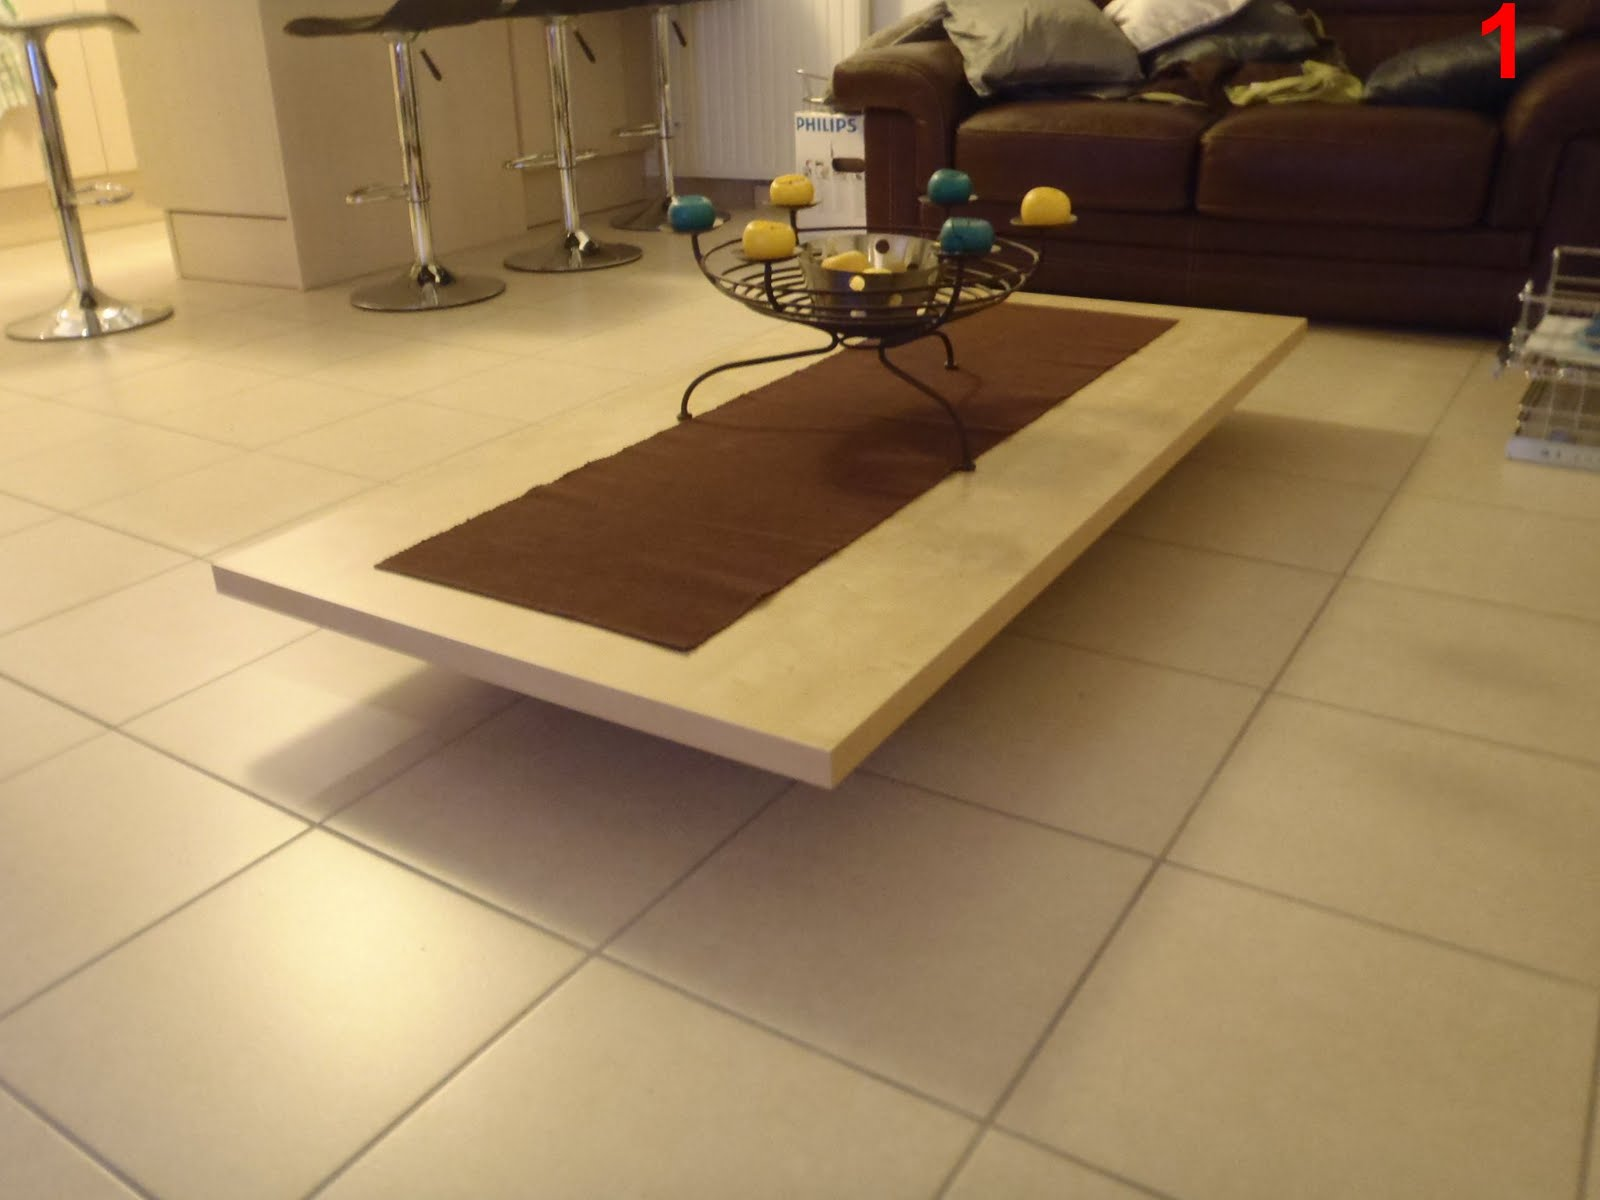 Lift coffee table IKEA Hackers